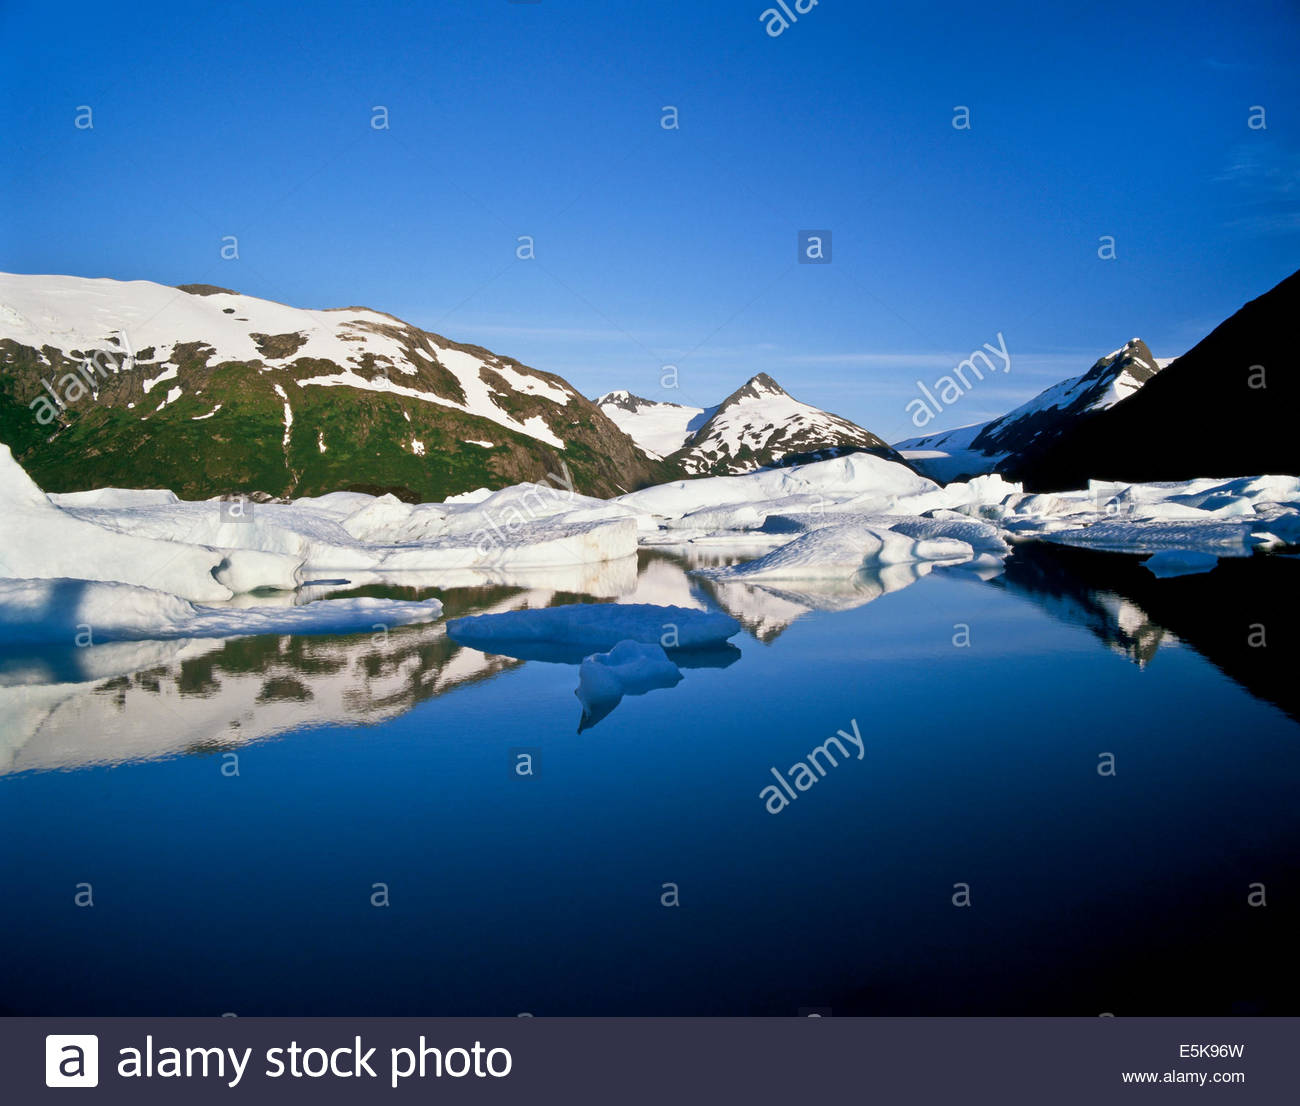 Icebergs from the Portage Glacier in Chugach National Forest in Alaska USA - Stock Image